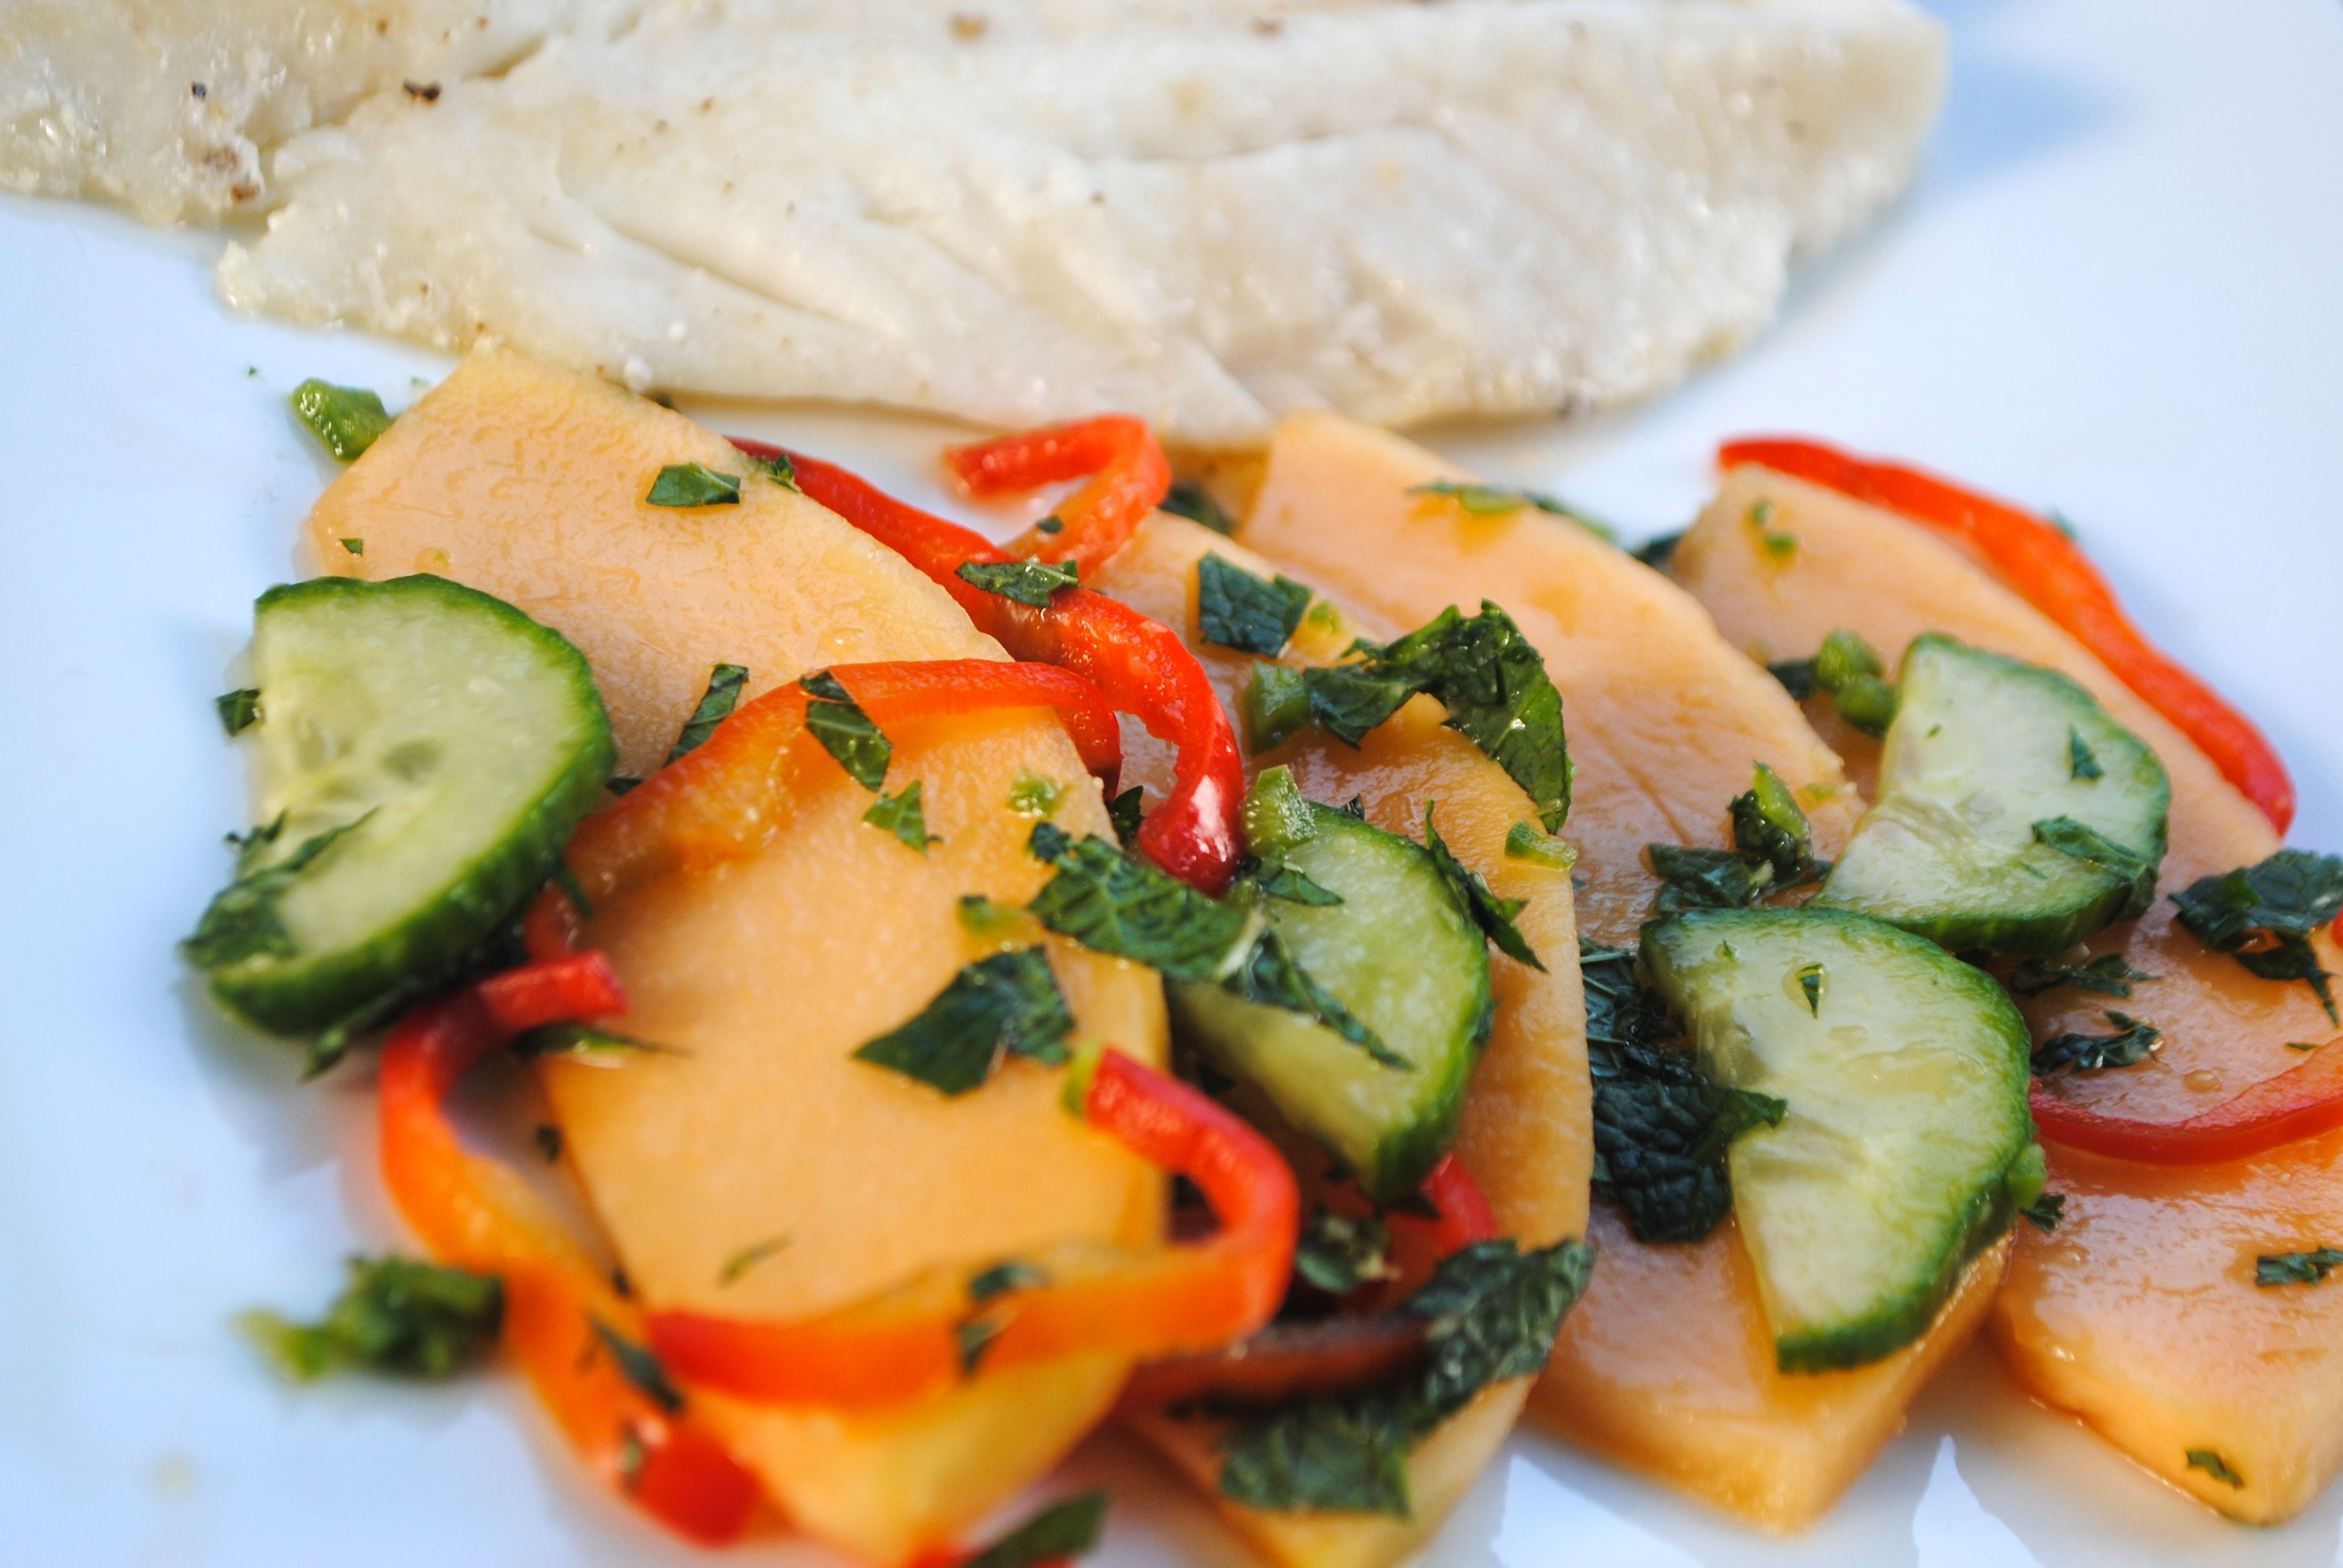 GRILLED FISH WITH SPICY CANTALOUPE CUCUMBER SALAD